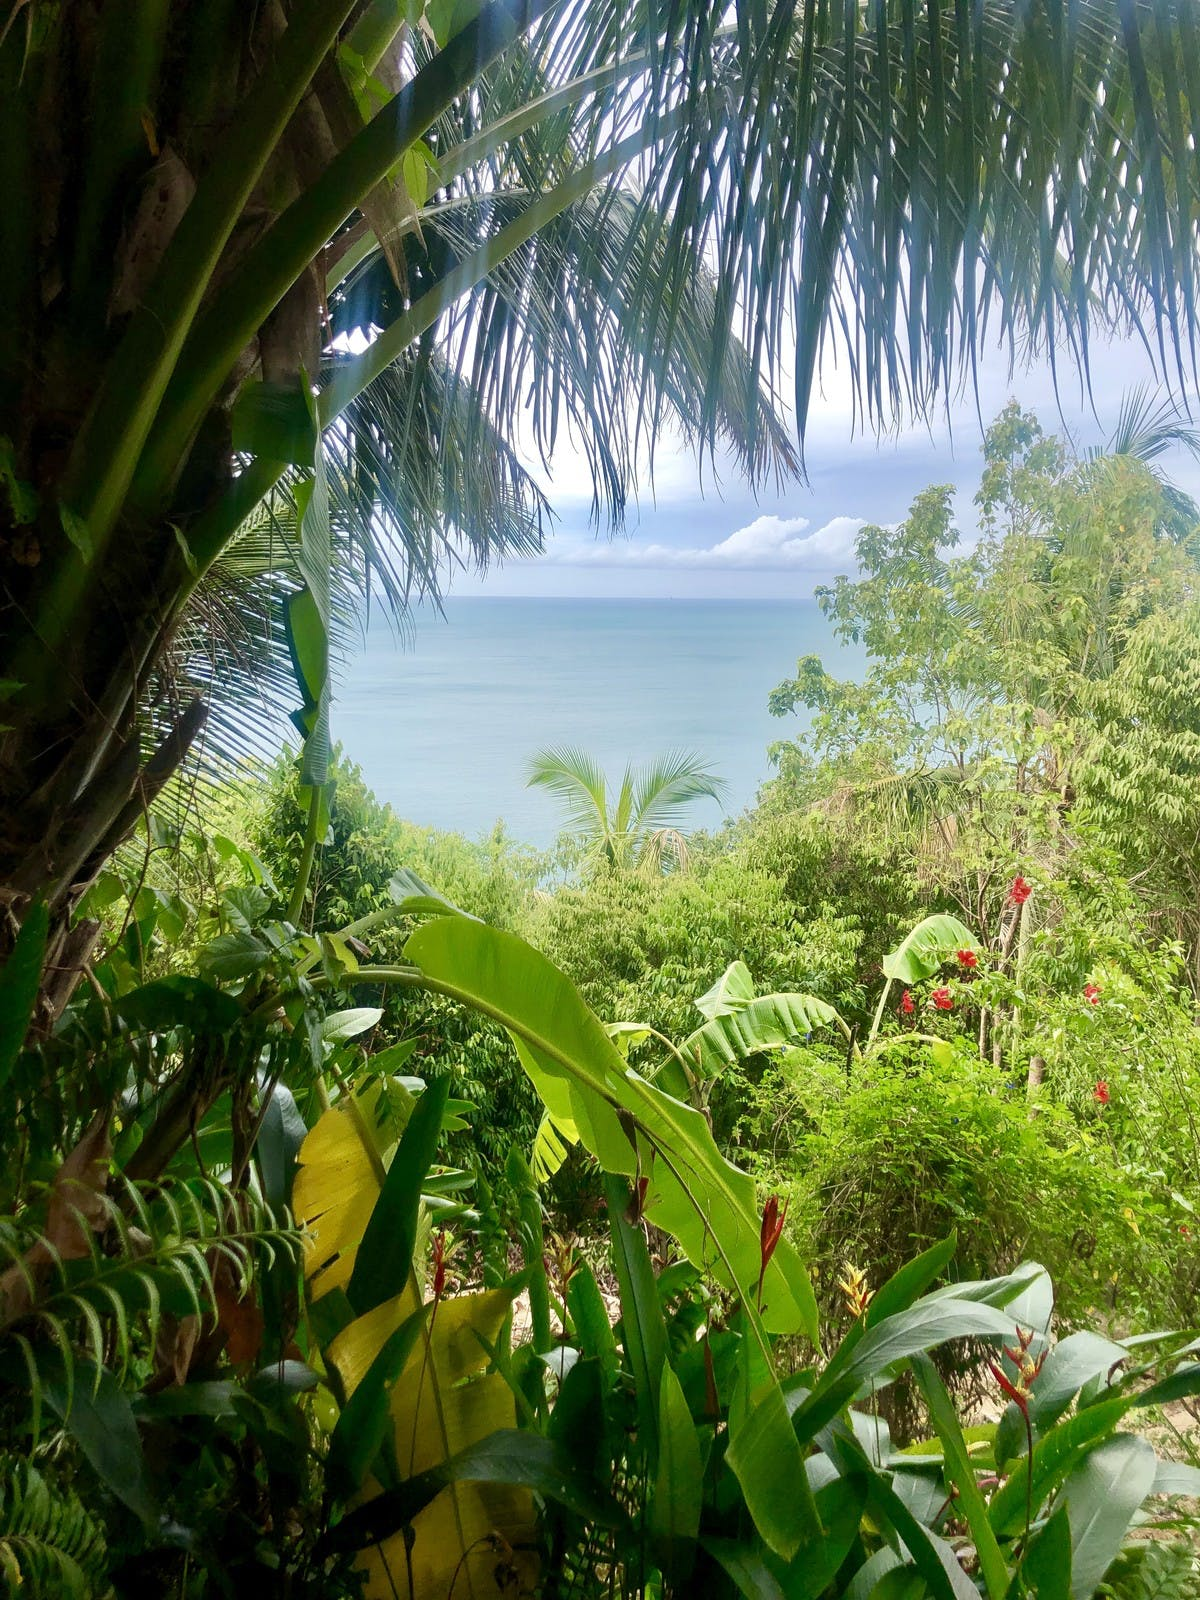 view of ocean from the jungle